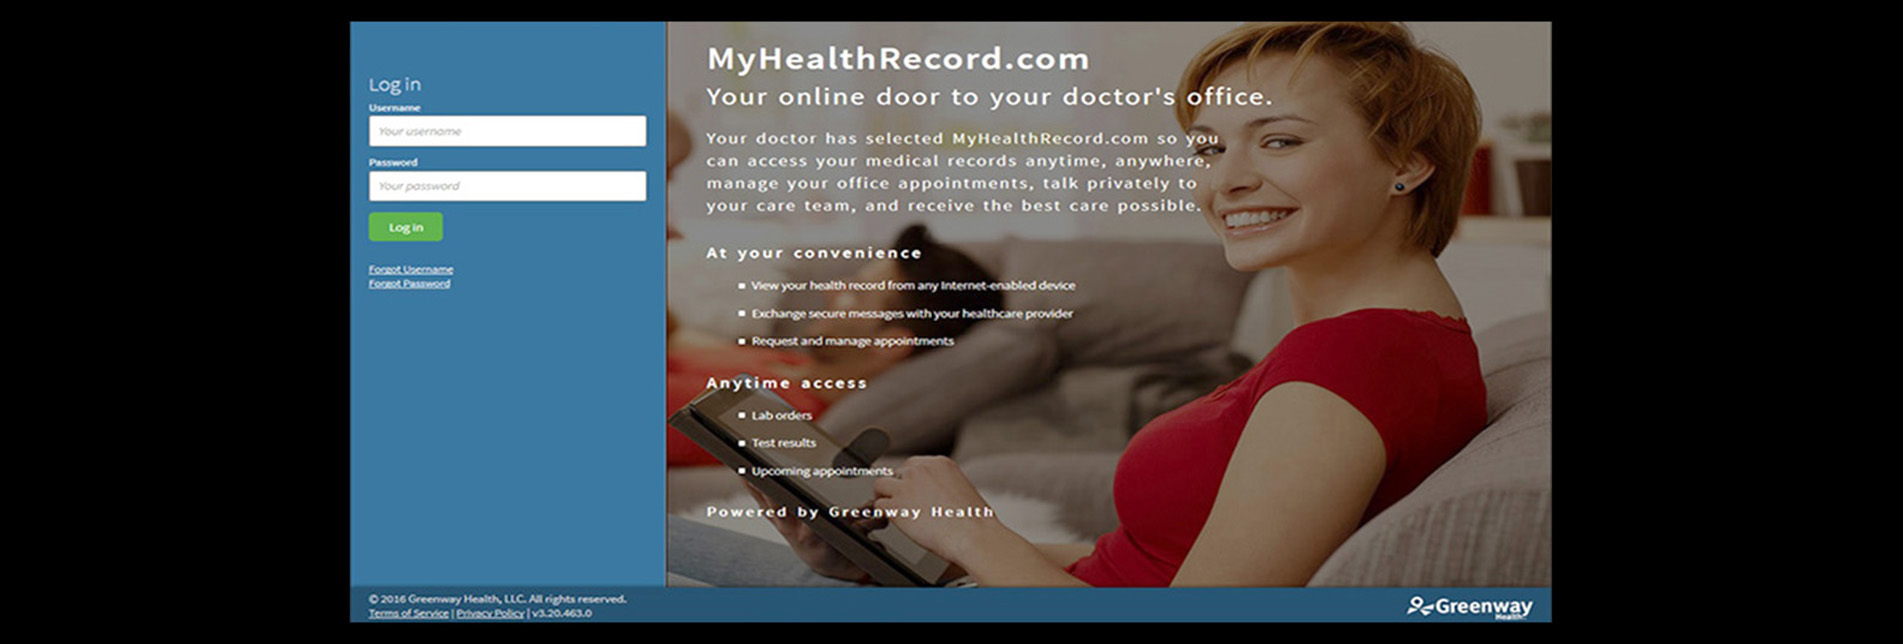 ATTENTION ALL PATIENTS: DR. LAKIN'S NEW SECURE PATIENT PORTAL 'MyHealthRecord.com' IS HERE!